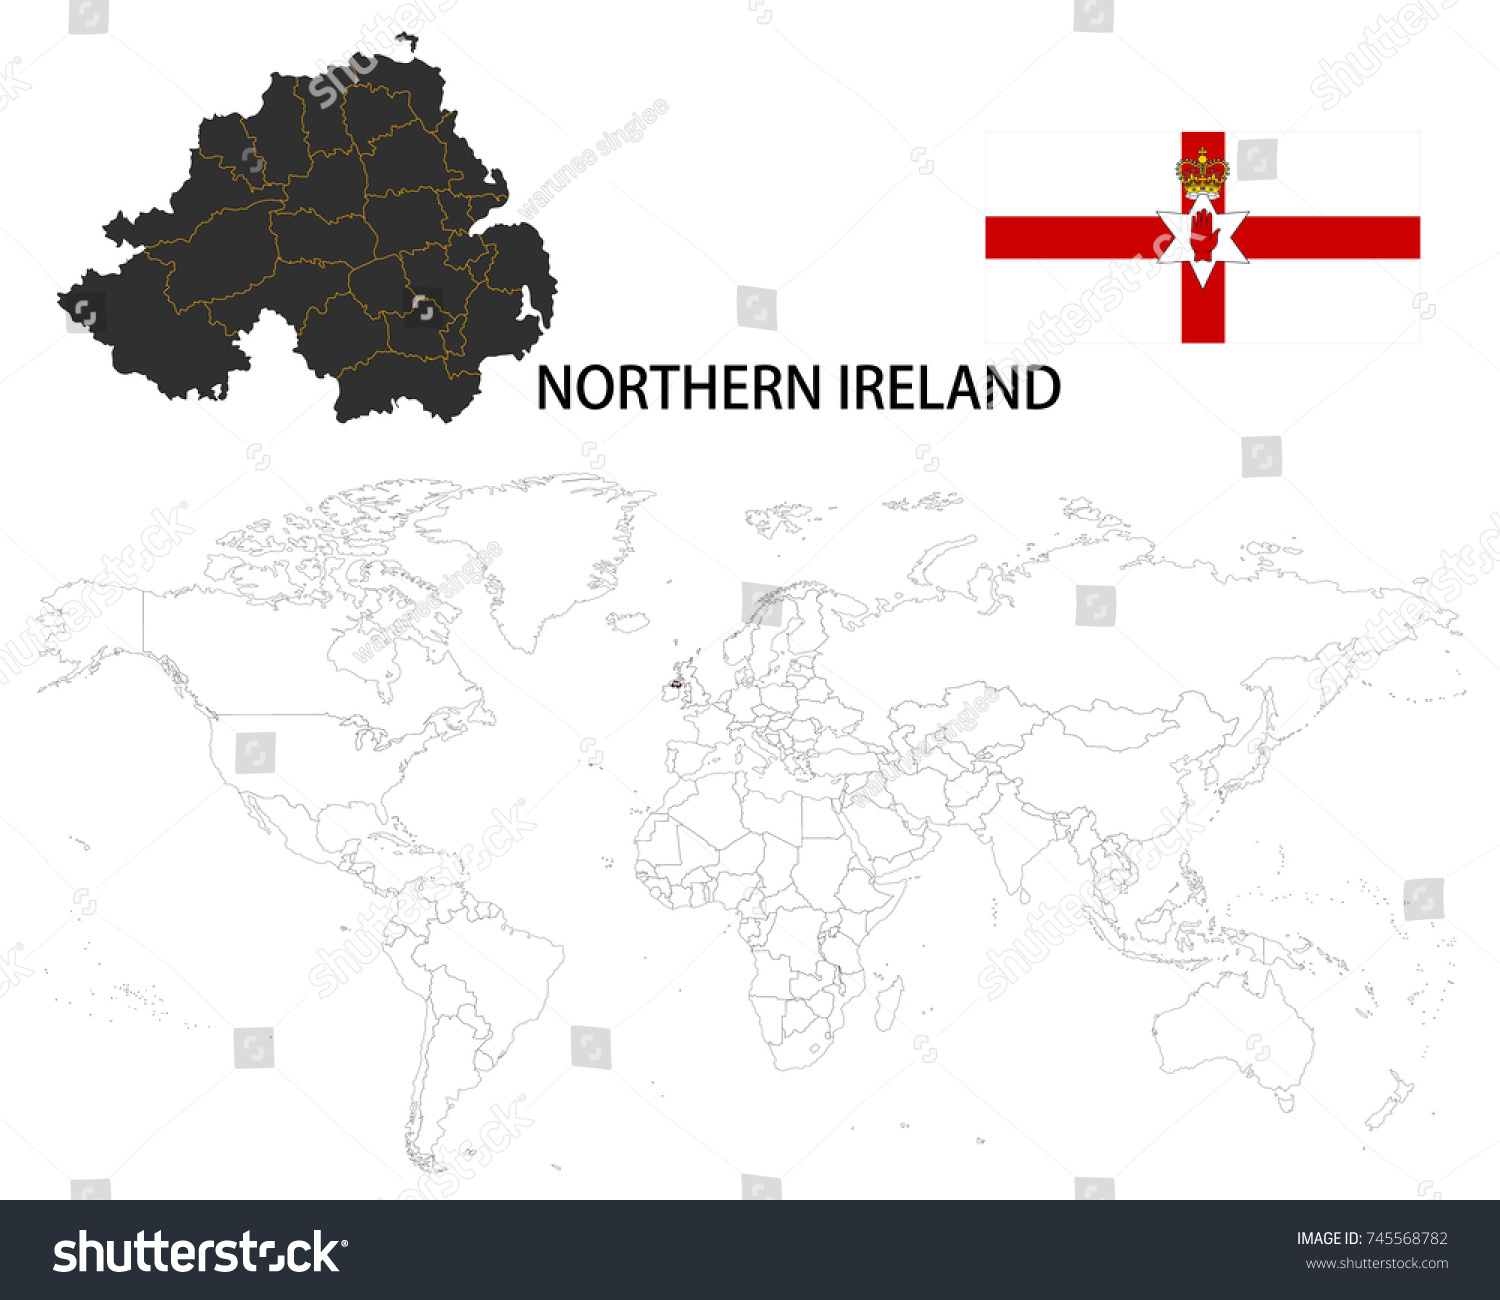 Northern Ireland Map On World Map Stock Vector (Royalty Free ...